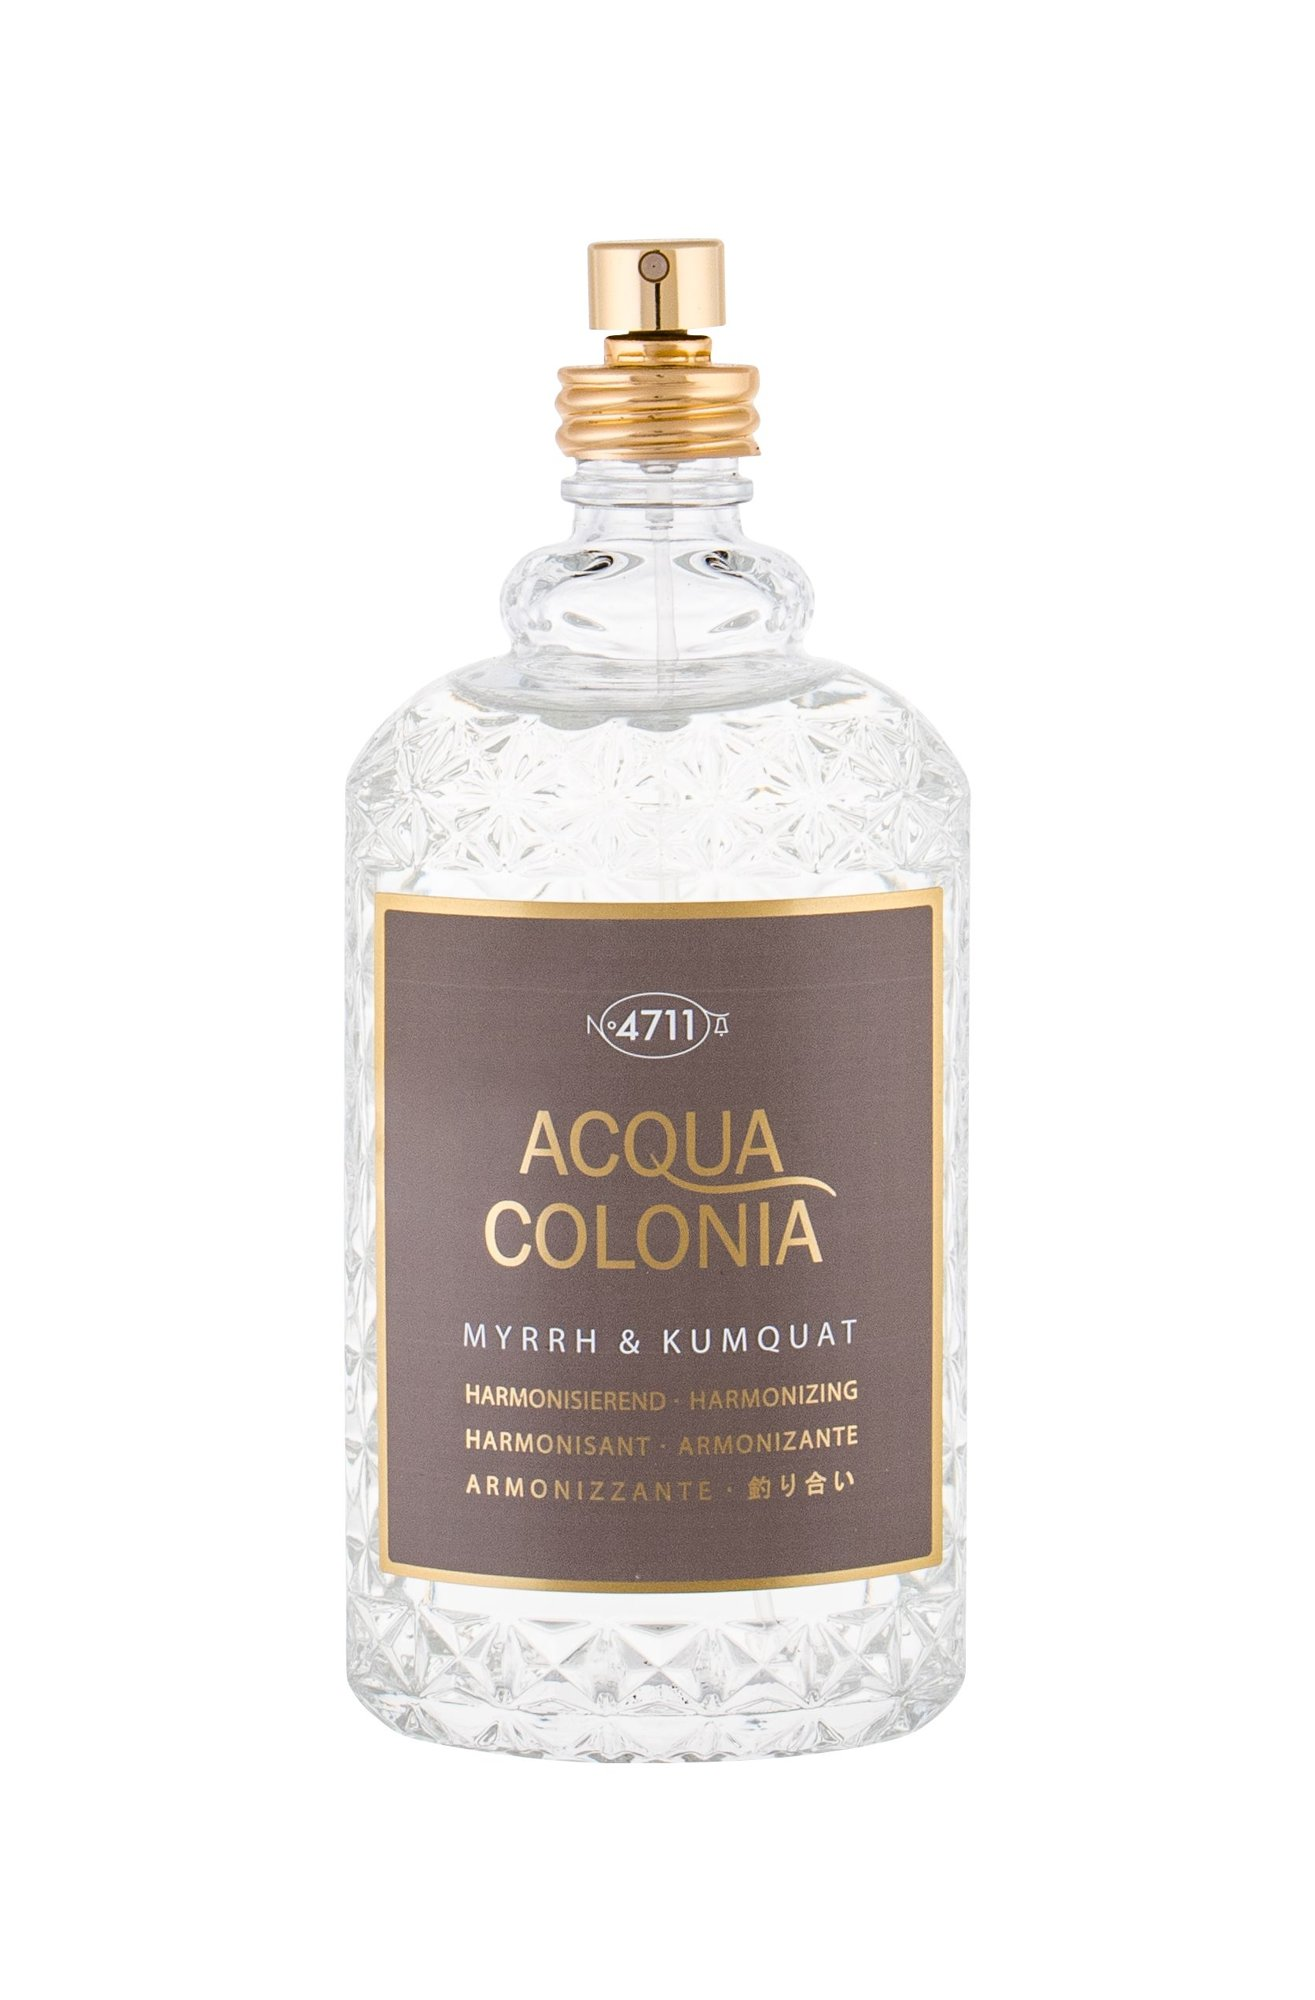 4711 Acqua Colonia Eau de Cologne 170ml  Myrrh & Kumquat